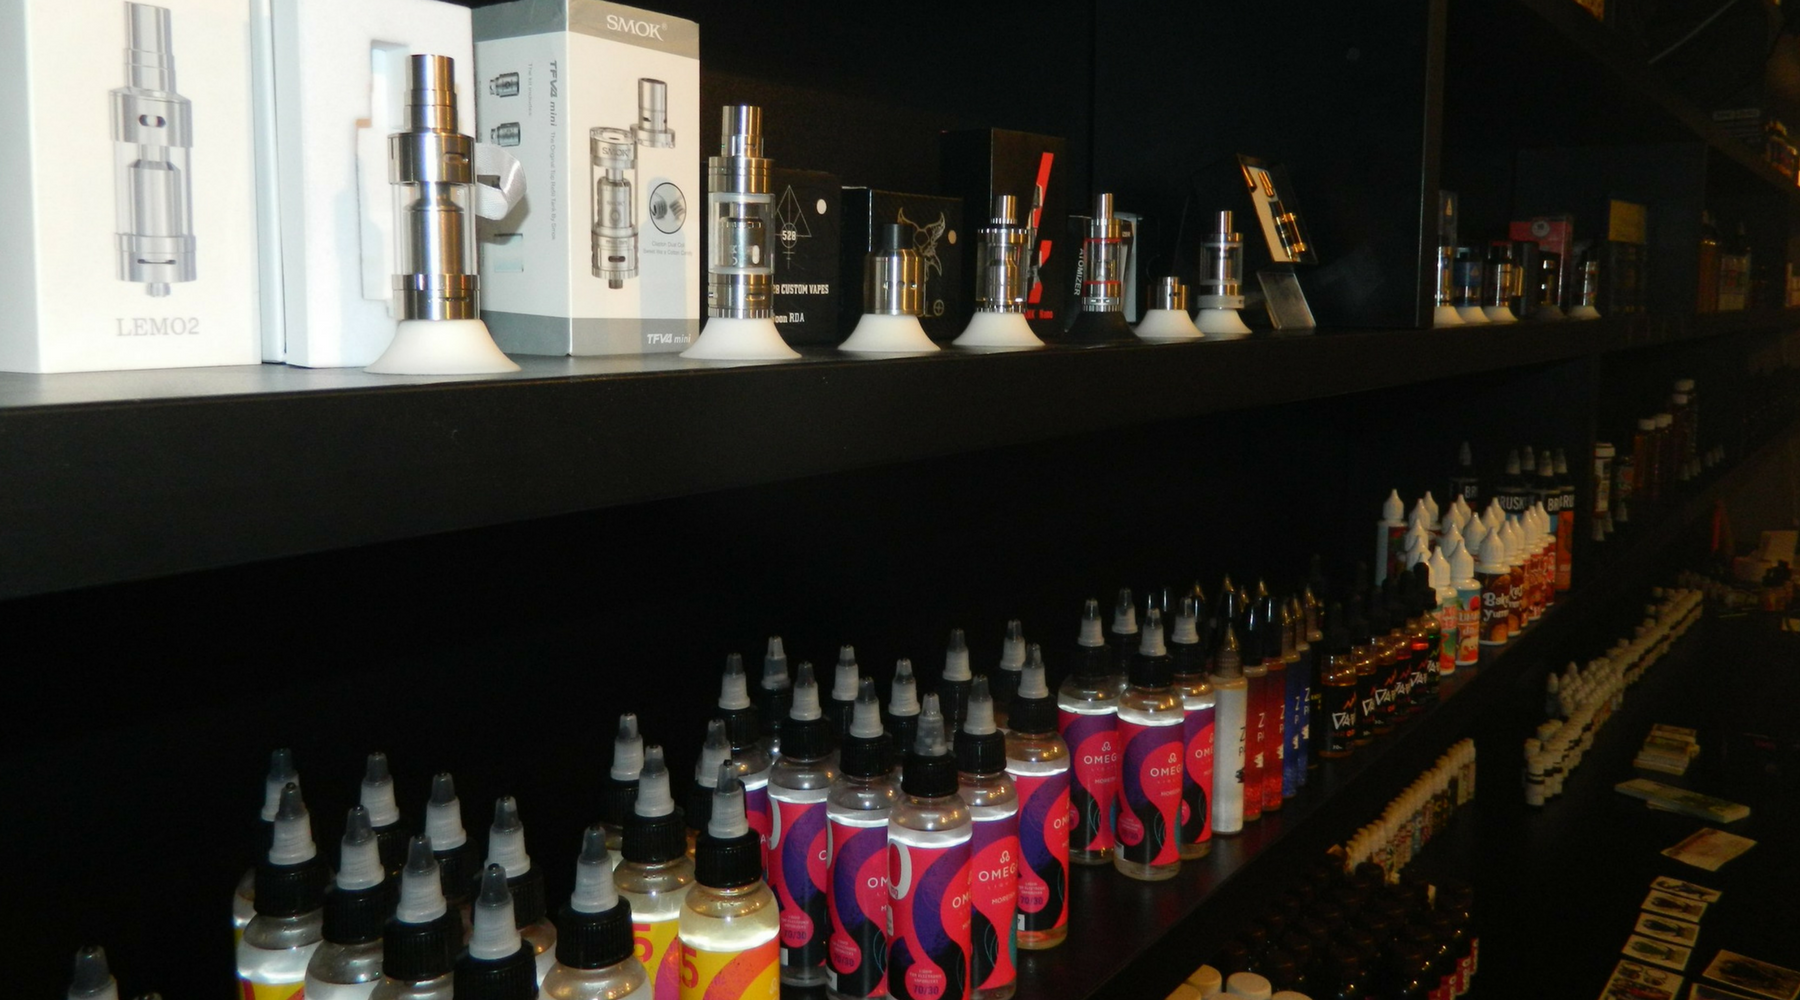 Vape Shop in Stoke-on-Trent, UK